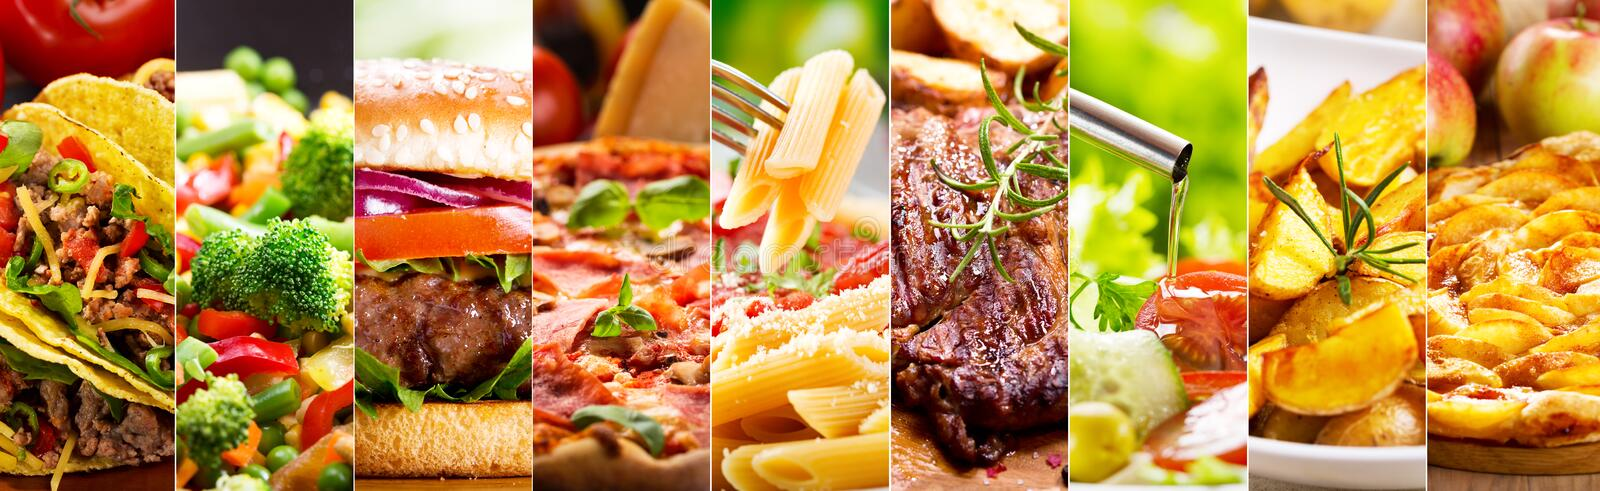 Collage of food products stock photography